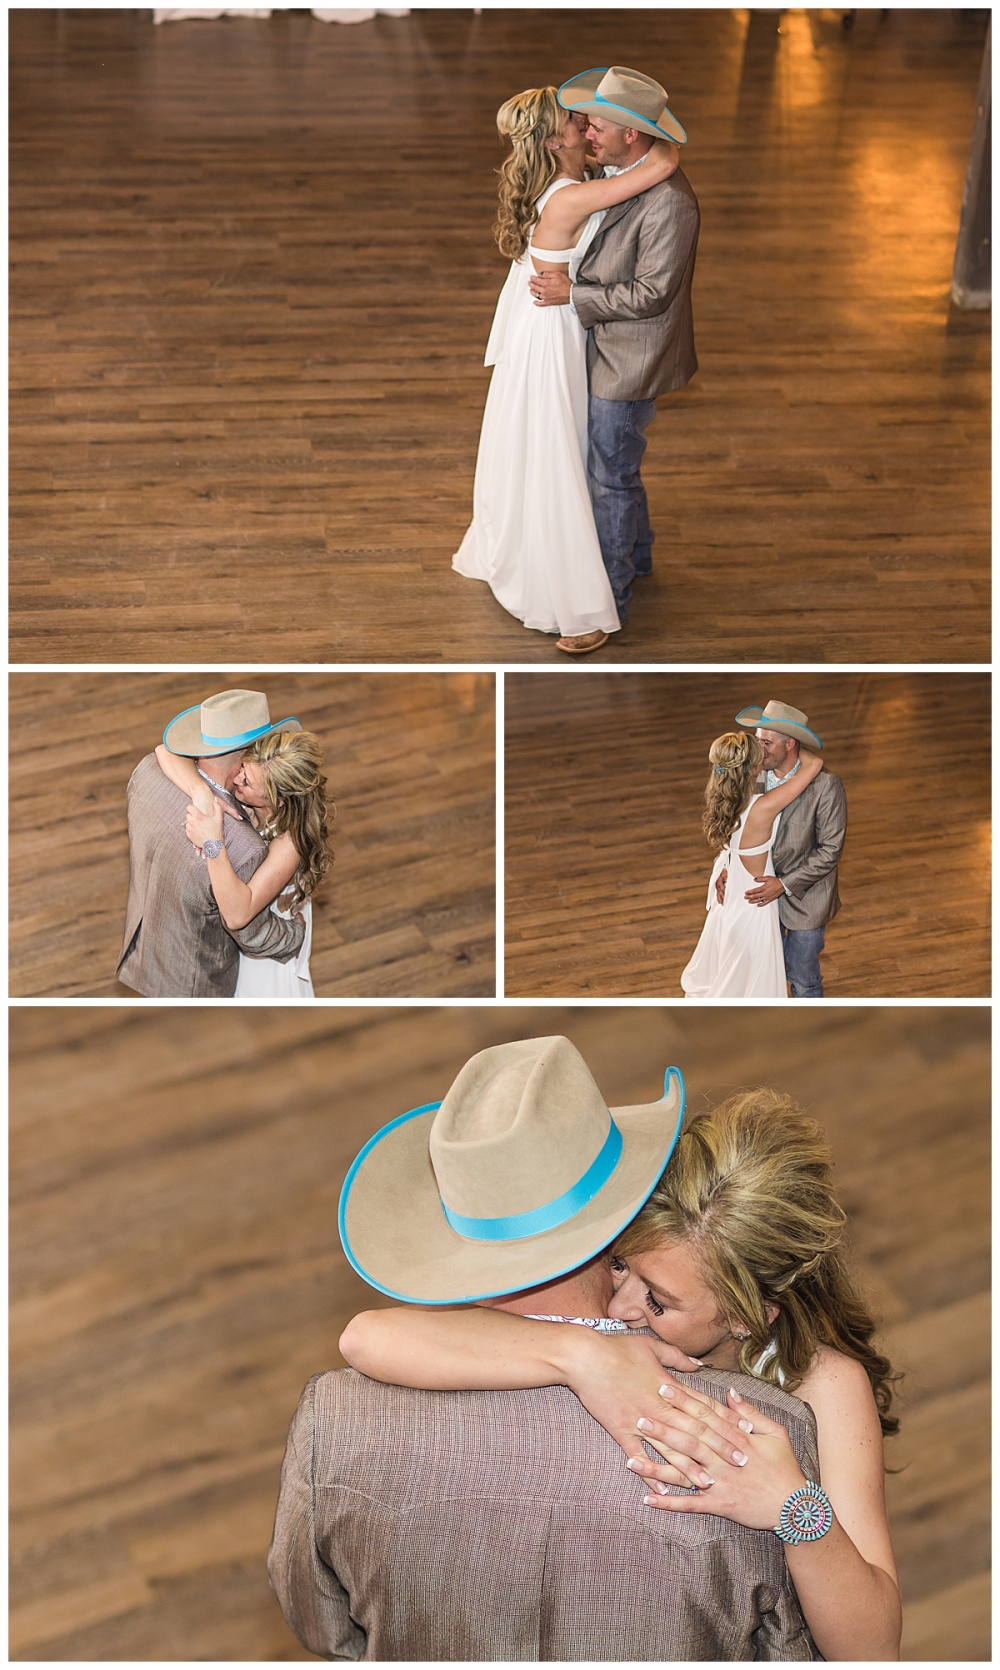 Eagle-Dancer-Ranch-Boerne-Texas-Wedding-Party-Barn-Carly-Barton-Photography_0065.jpg